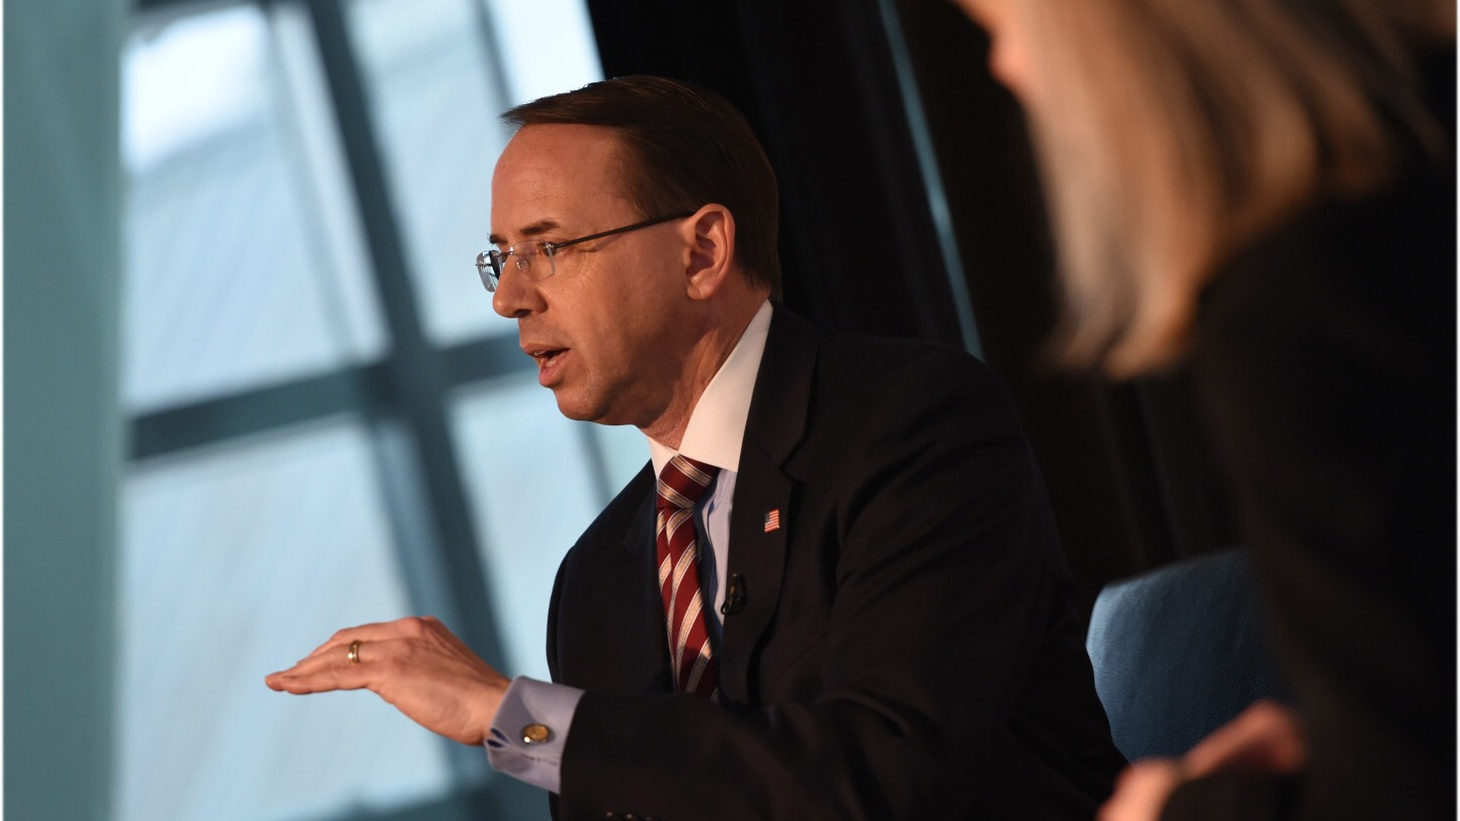 We ask what happens if Deputy Attorney General Rod Rosenstein resigns or is fired later this week. We also discuss Supreme Court nominee Brett Kavanaugh, who is facing a second allegation of sexual misconduct.